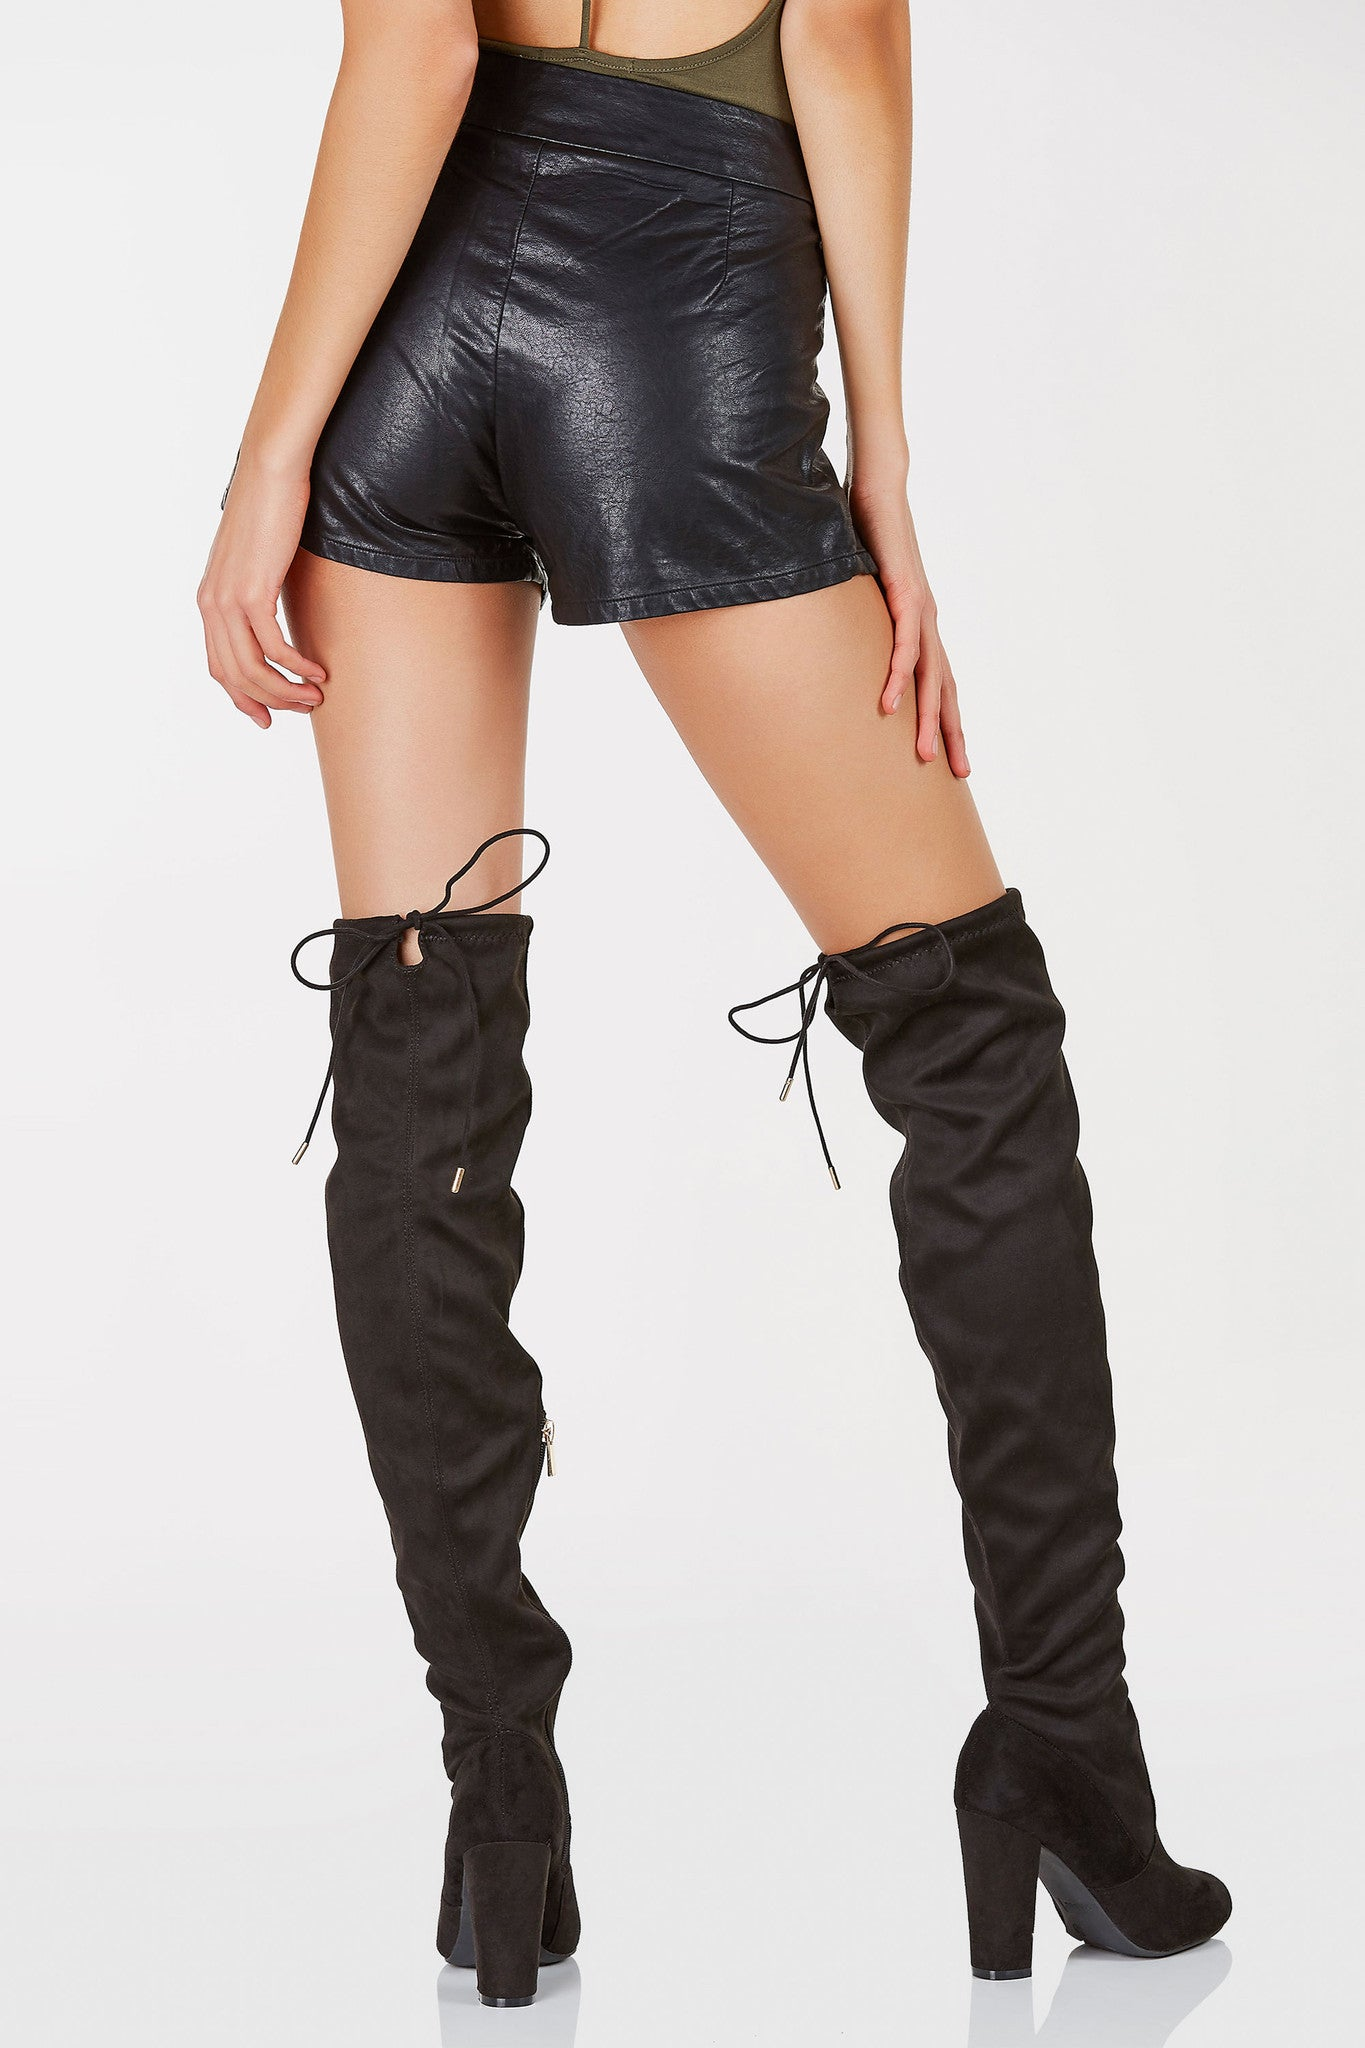 A sick pair of faux leather shorts with trendy lace up detailing in front. Hidden side zip closure for ease. Chic cut out design at hem to flatter your legs. Easy to dress down with a basic tee and sneakers or dress up with a bodysuit and heels!